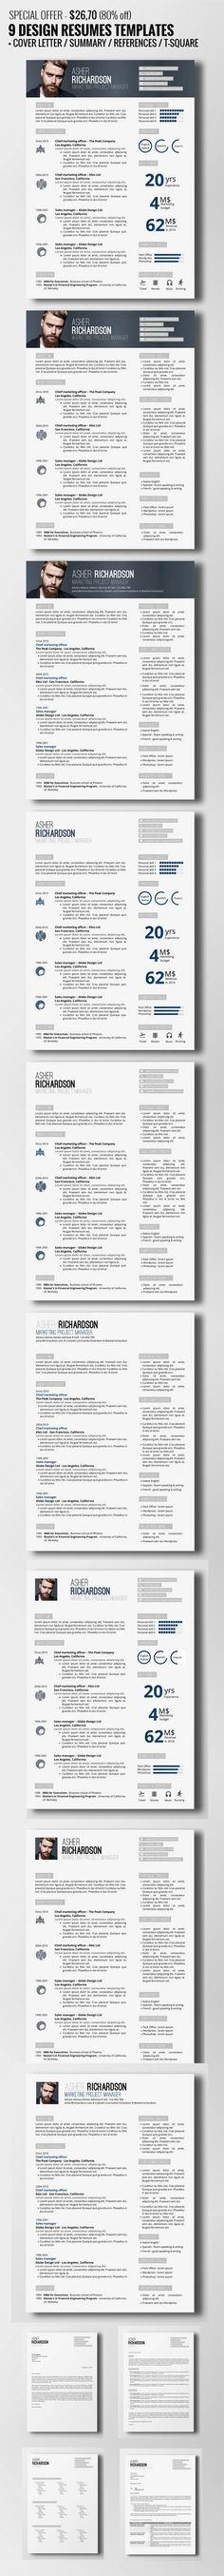 435 best Resume images on Pinterest Resume design, Design resume - 2 page resume